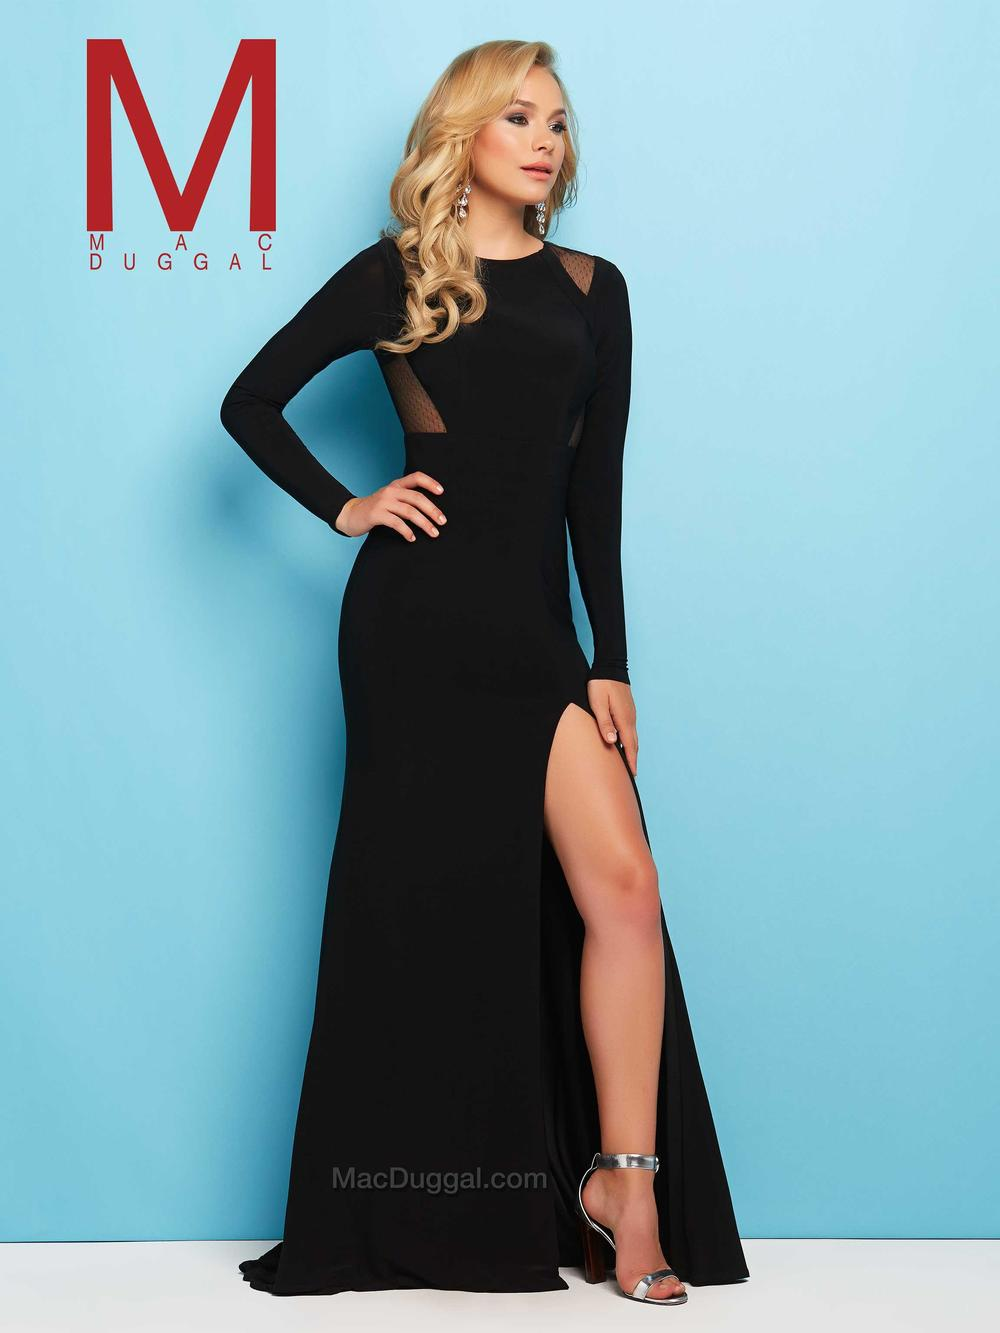 65524  -Far from dull, this long sleeved formal gown is perfect for prom or any special occasion. Sheer illusion cutouts on shoulders and on the sides of the bodice make a fashion forward statement.  Stay in style and keep your look chic and sophisticated with this jersey prom gown in either the black or red.   Colors Available - Black, Red